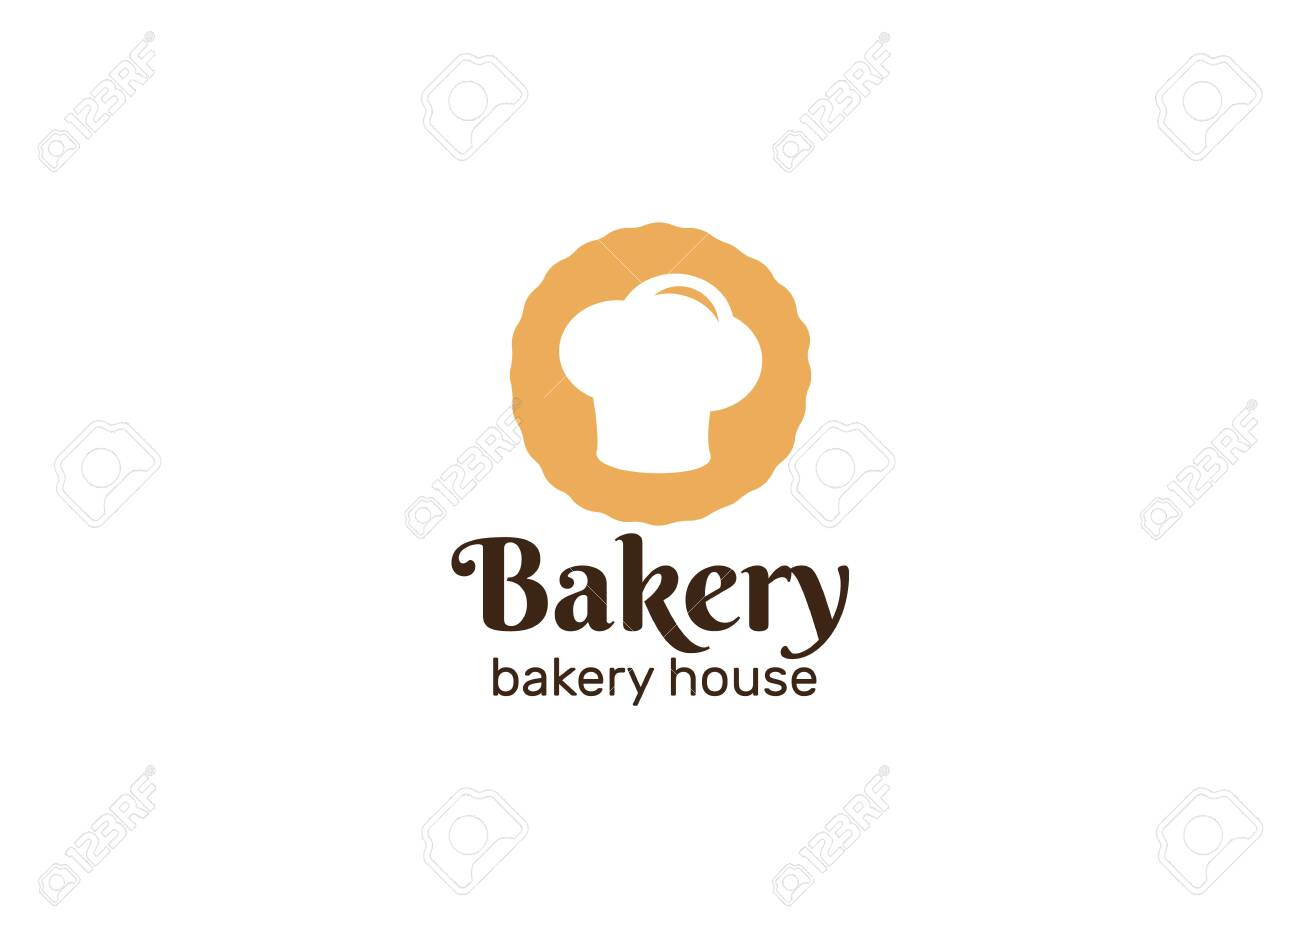 bakery emblems handmade lettering cookie logo bakery and bread royalty free cliparts vectors and stock illustration image 134177932 bakery emblems handmade lettering cookie logo bakery and bread